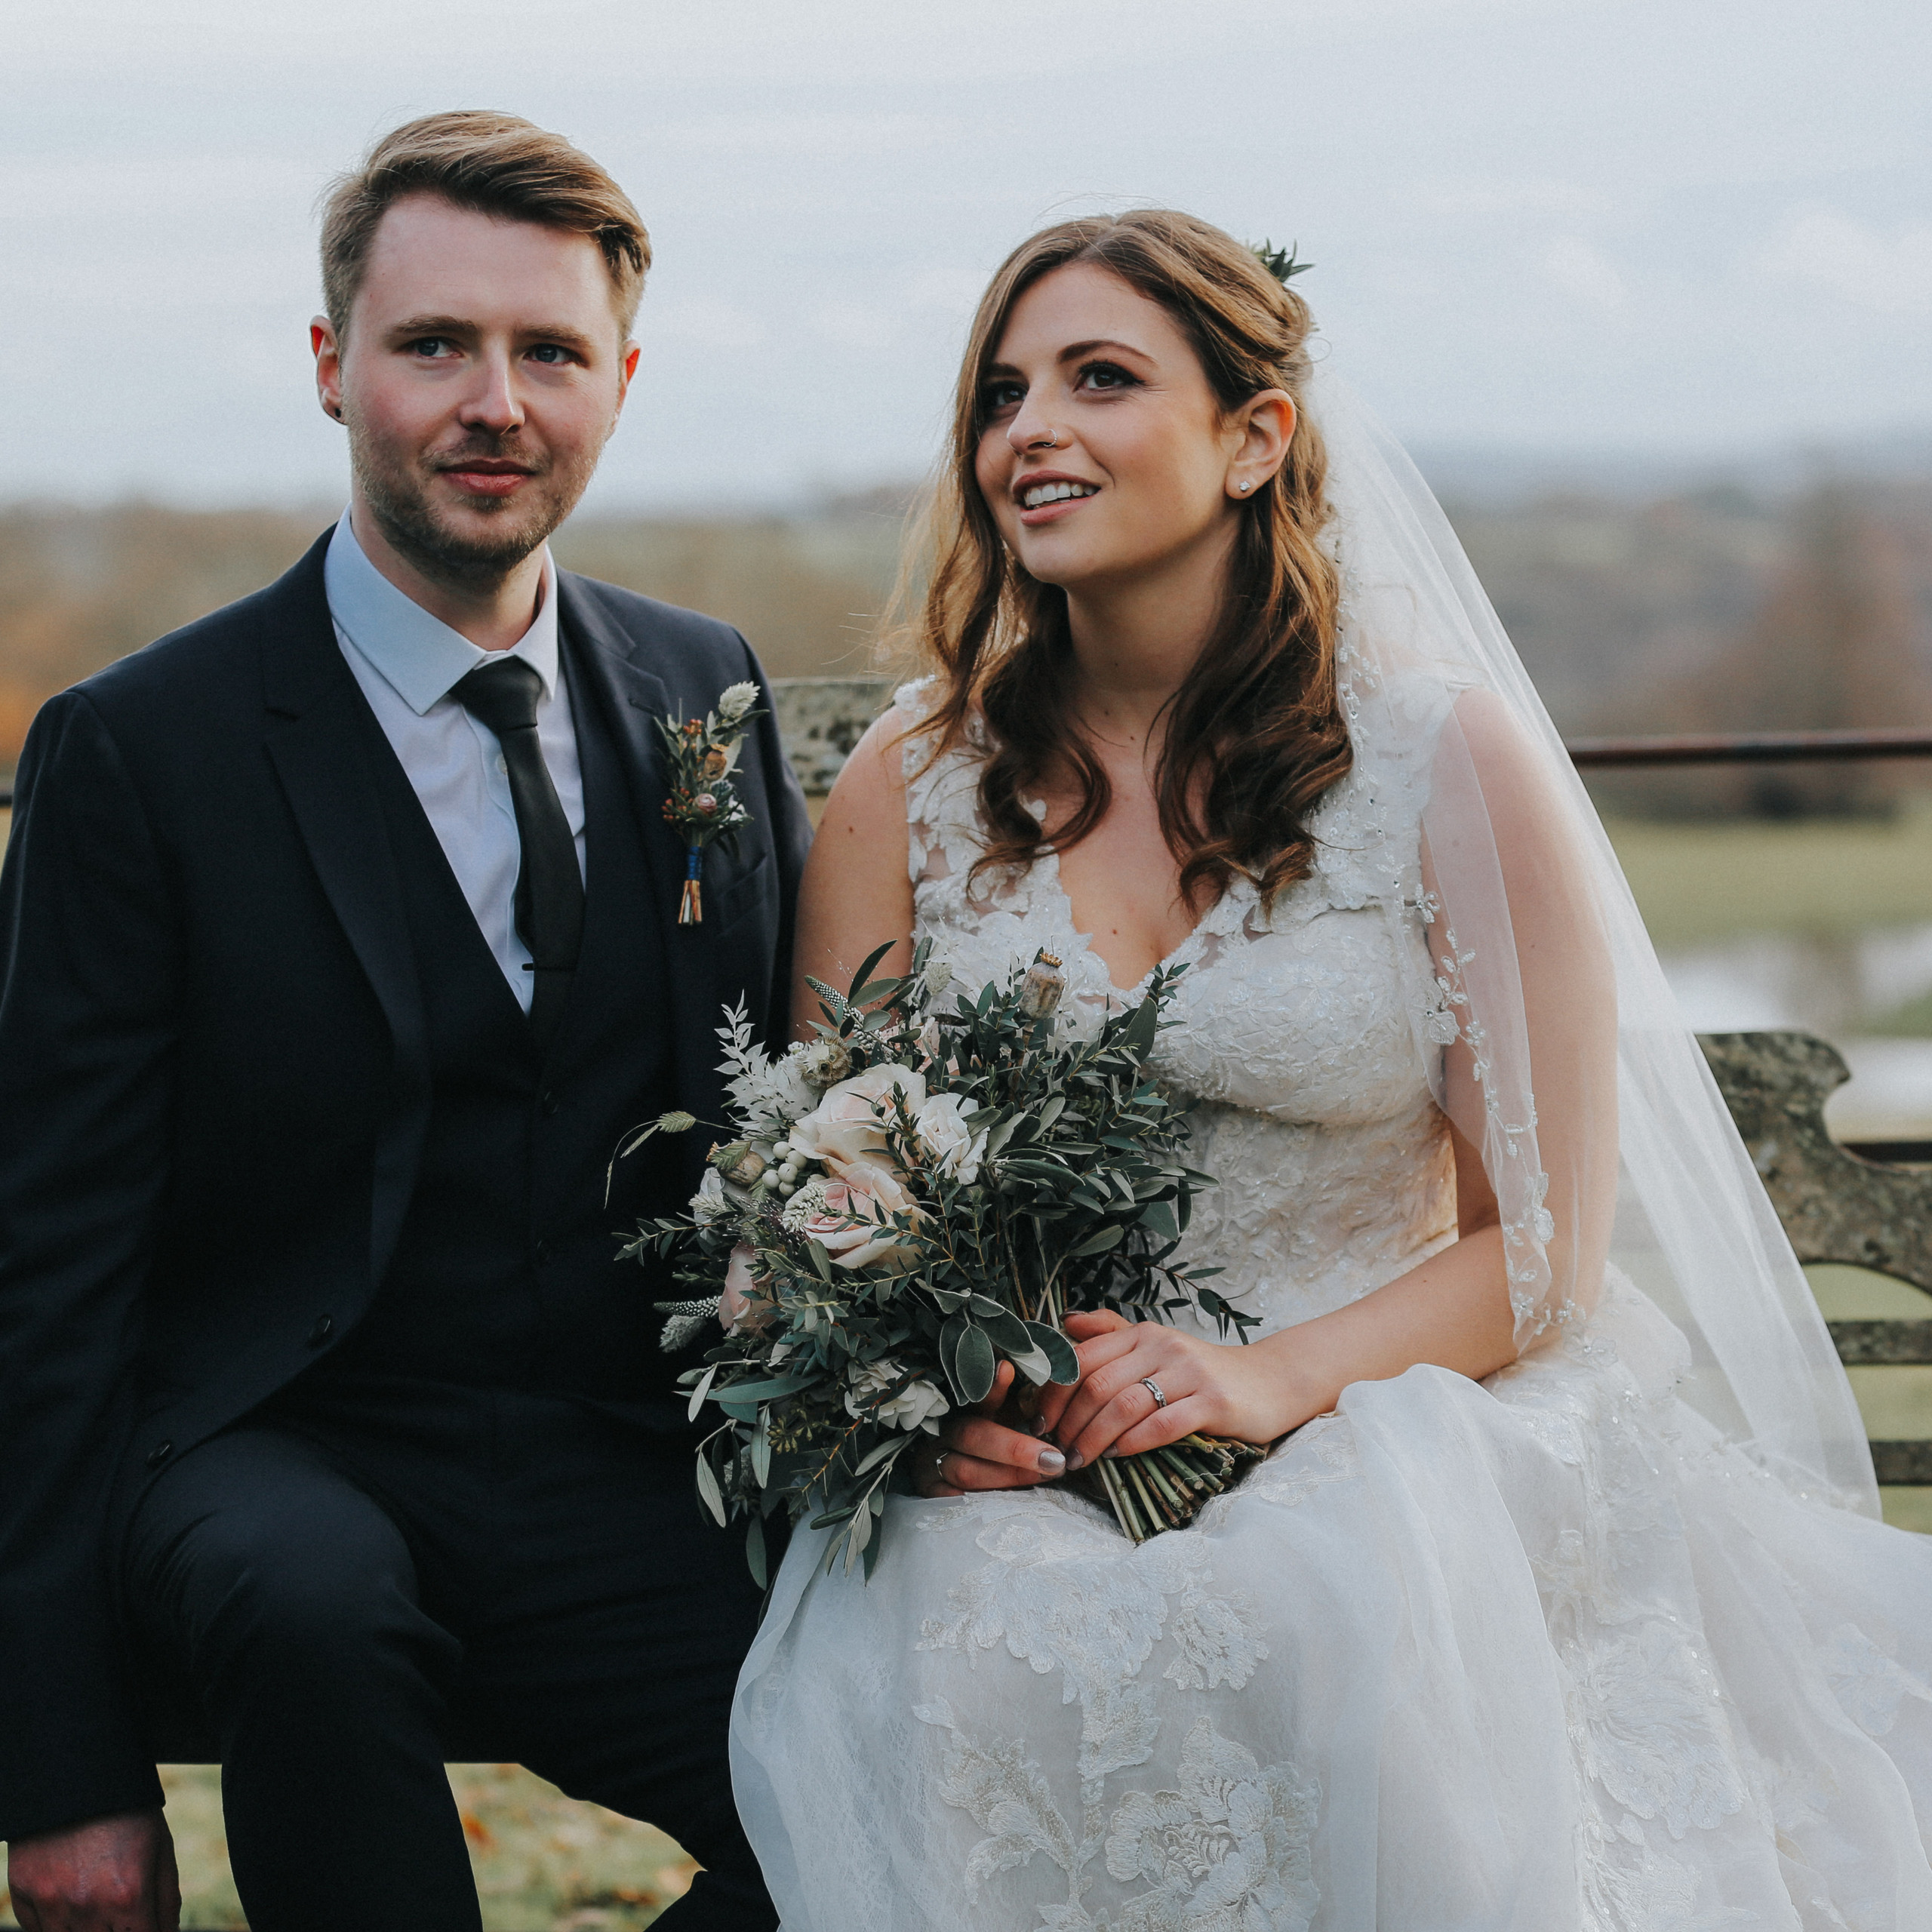 Bride and groom sit on bench and look into the distance at wadhurst castle wedding